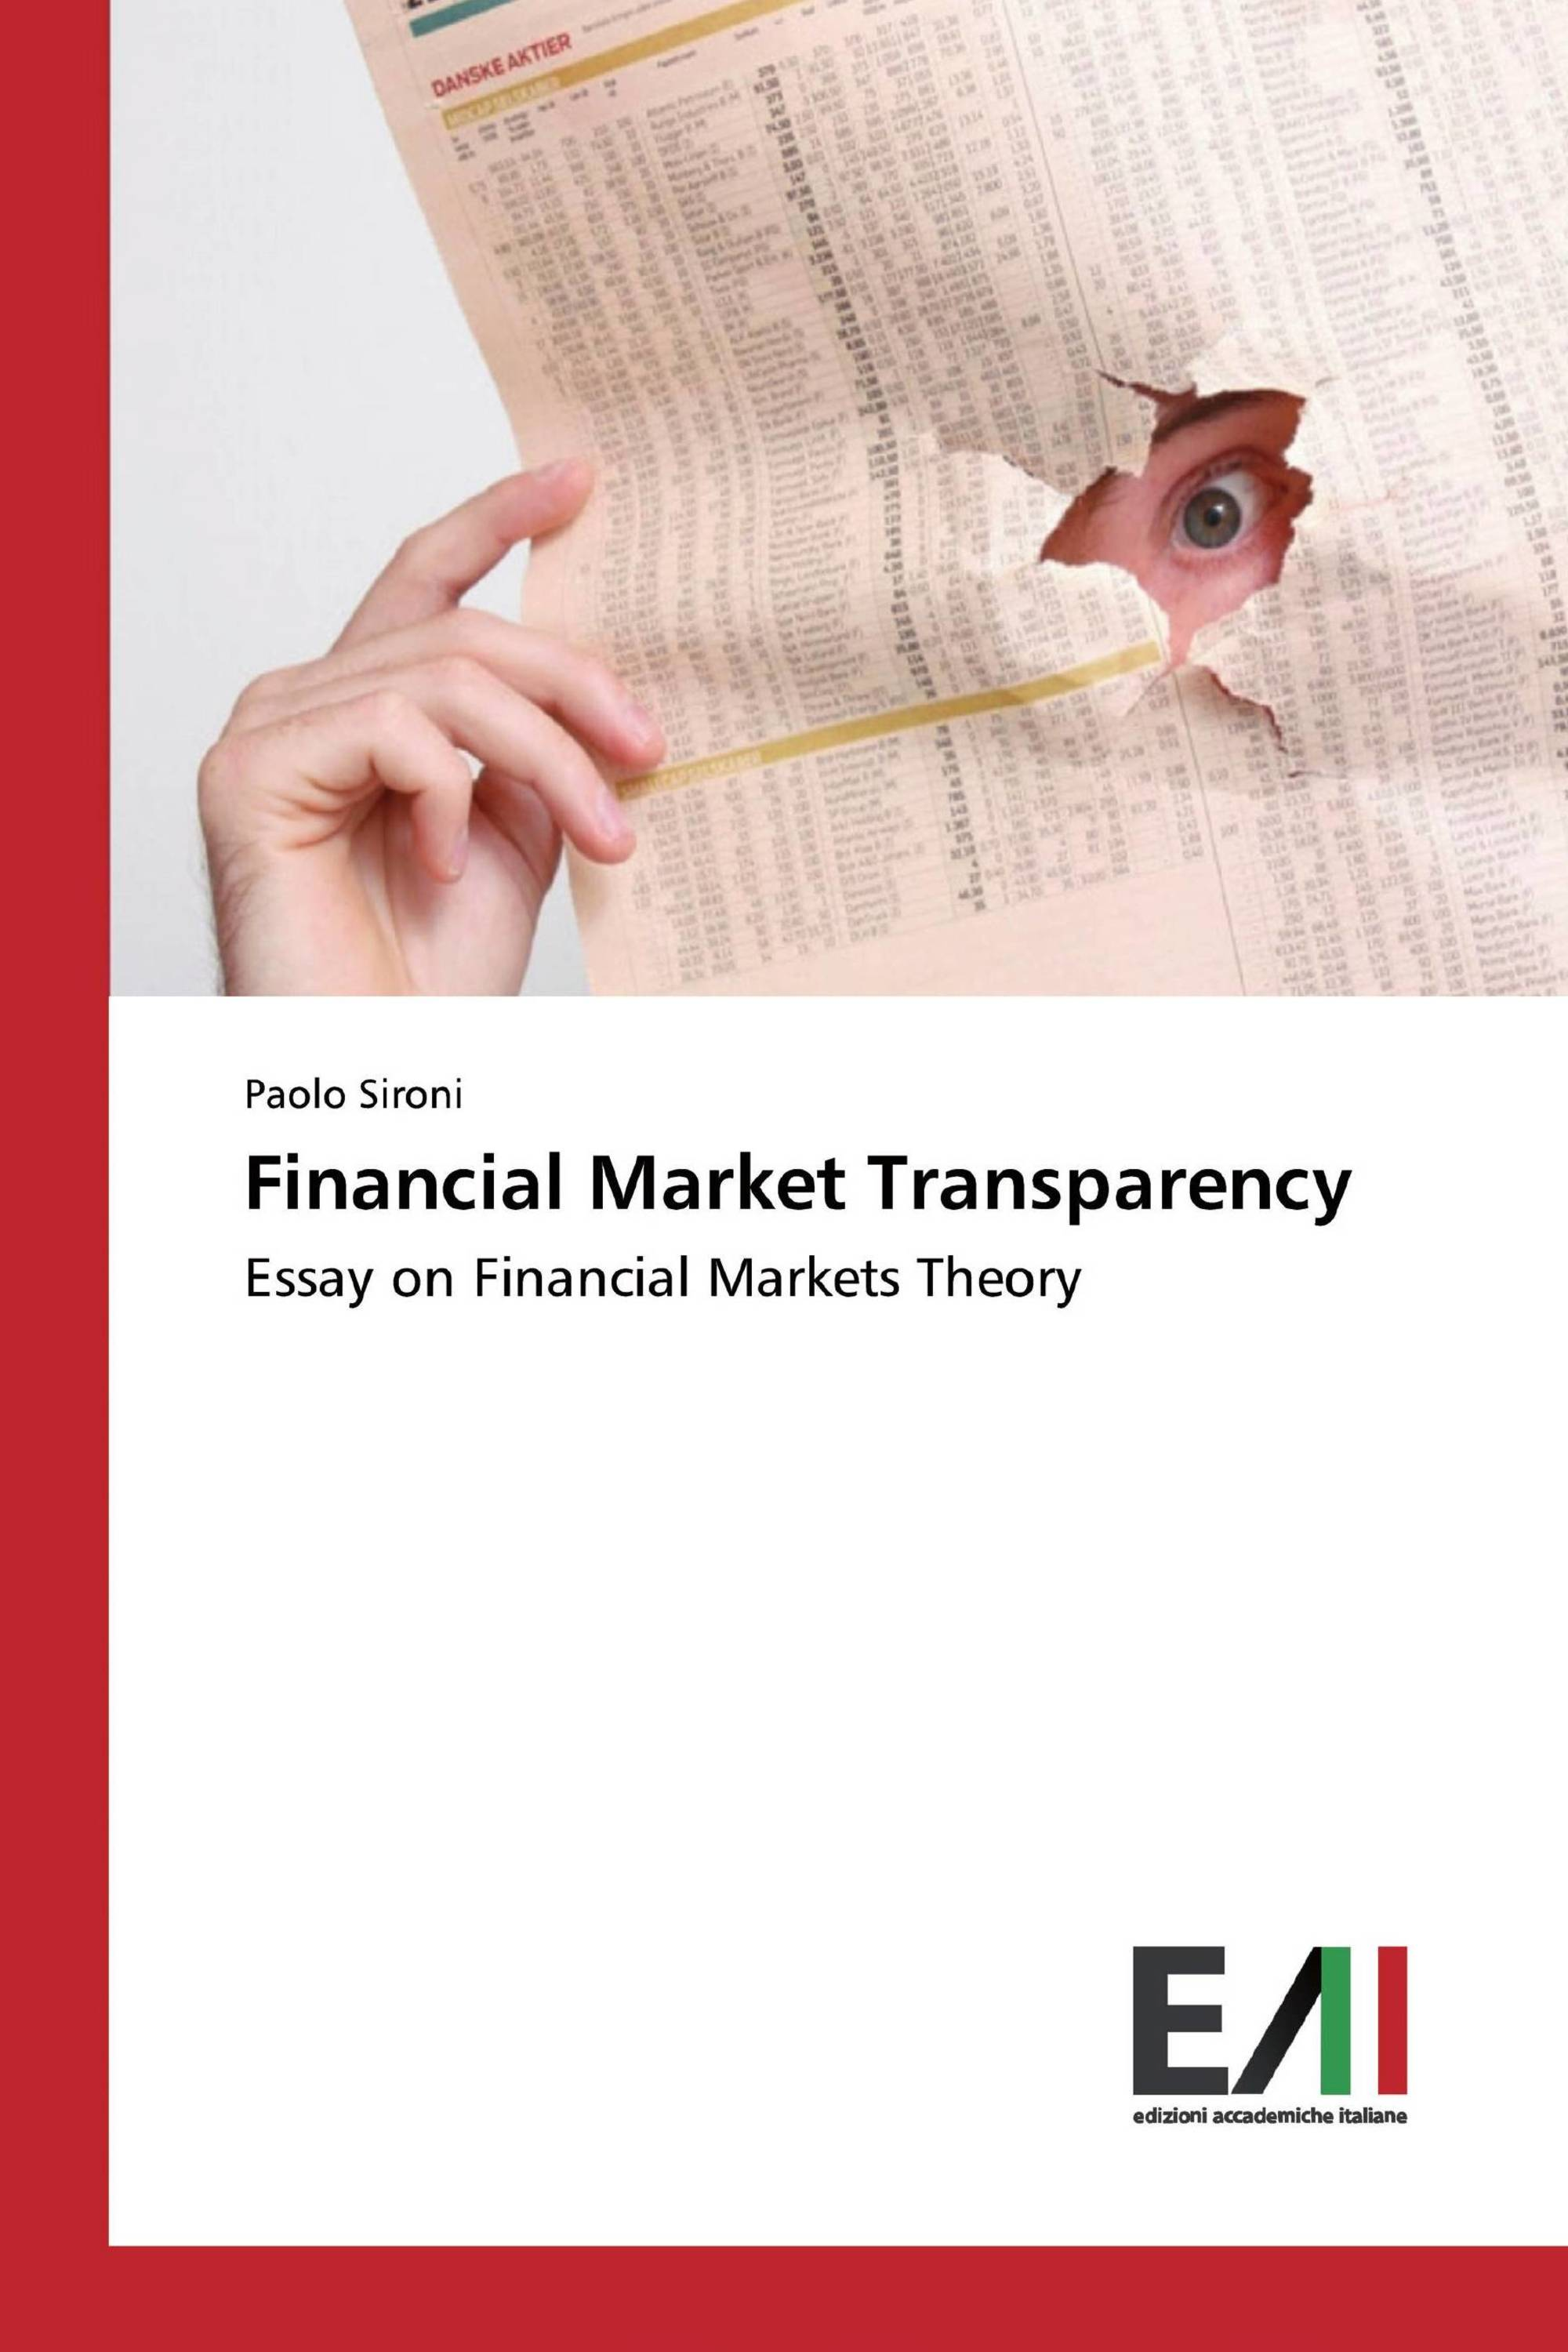 Financial Market Transparency